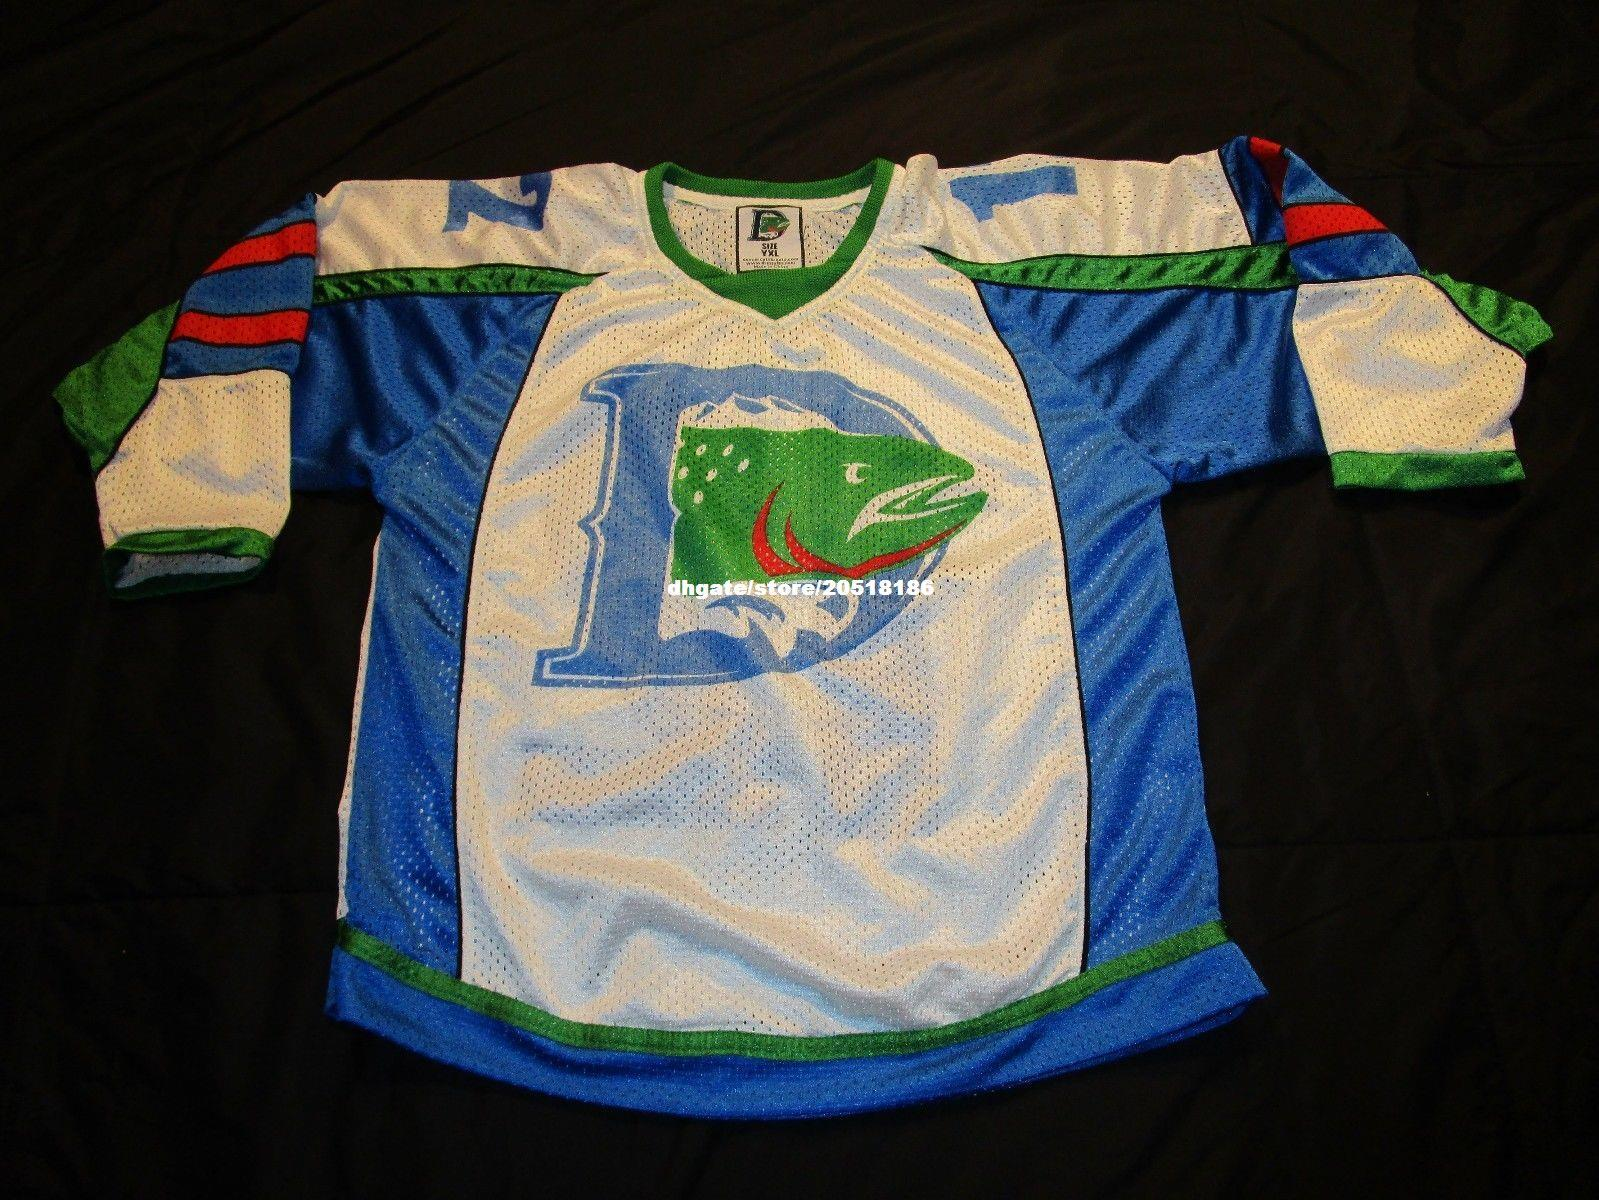 Cheap Custom DENVER CUTTHROATS HOCKEY JERSEY YOUTH XL SGA RARE DEFUNCT!  Stitched Men S Hockey Jersey UK 2019 From Nfljersey1 3ed0054a2